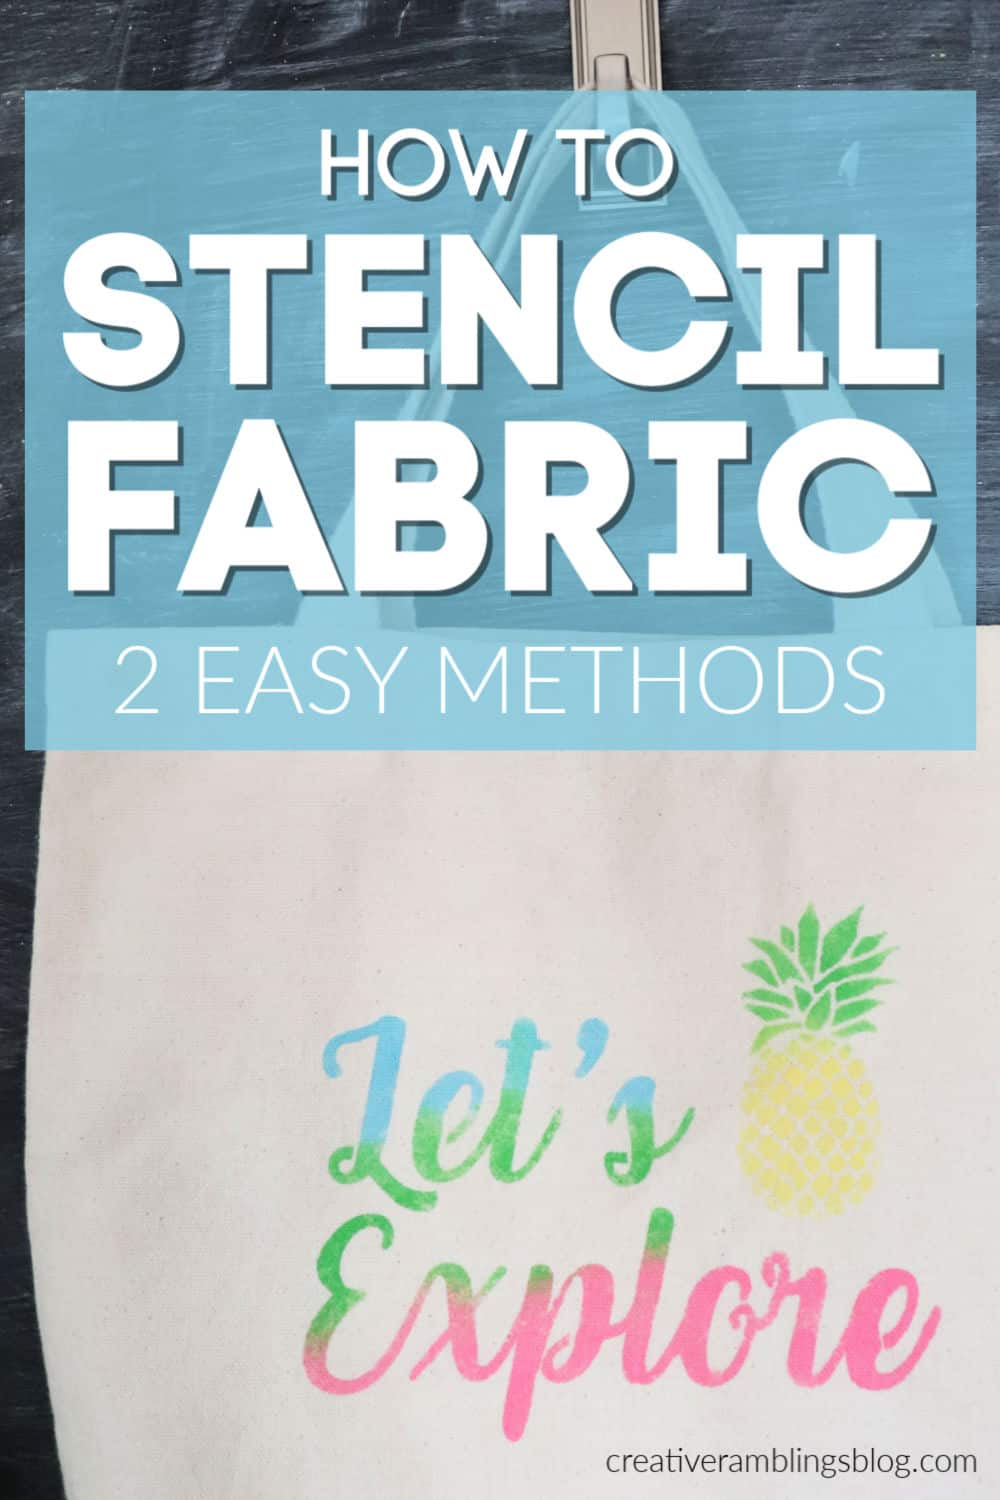 Learn how to stencil fabric using 2 easy methods